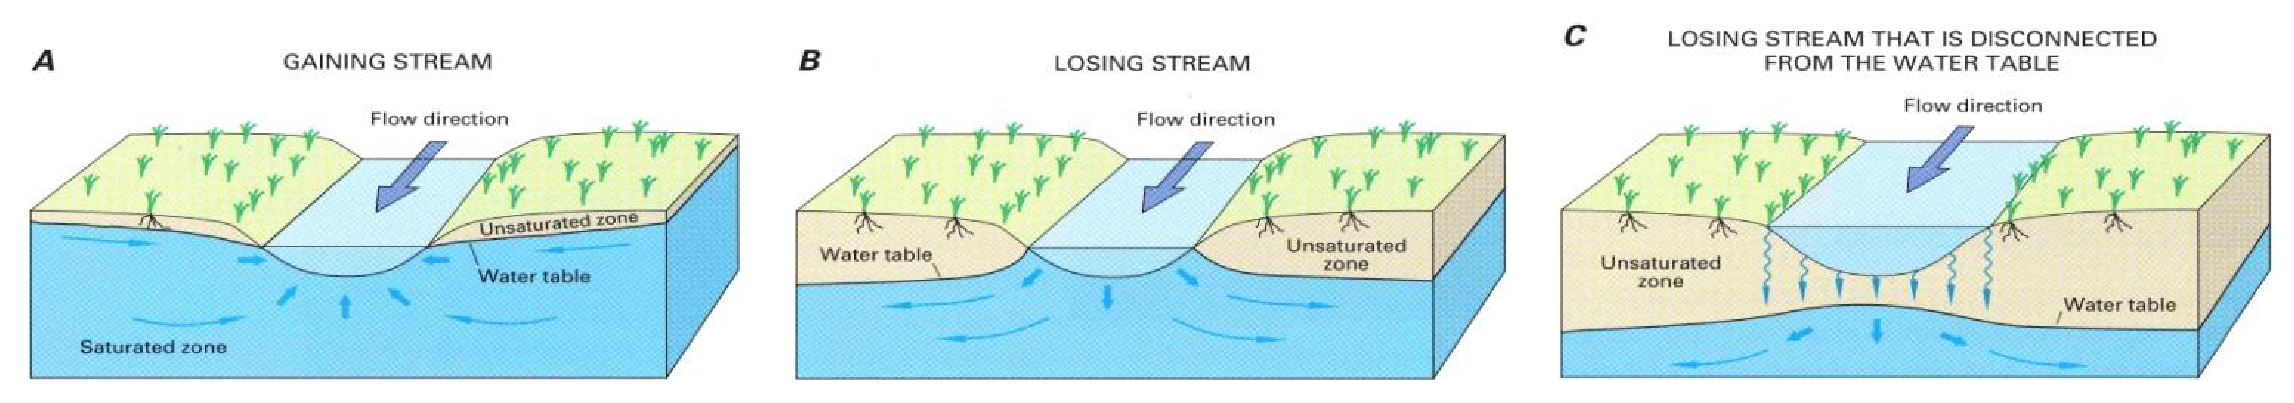 Figure 4: (A) Gaining streams receive water from the groundwater system. (B) Losing streams lose or add water to the groundwater system. (C) Disconnected streams are separated from the groundwater system by an unsaturated zone.